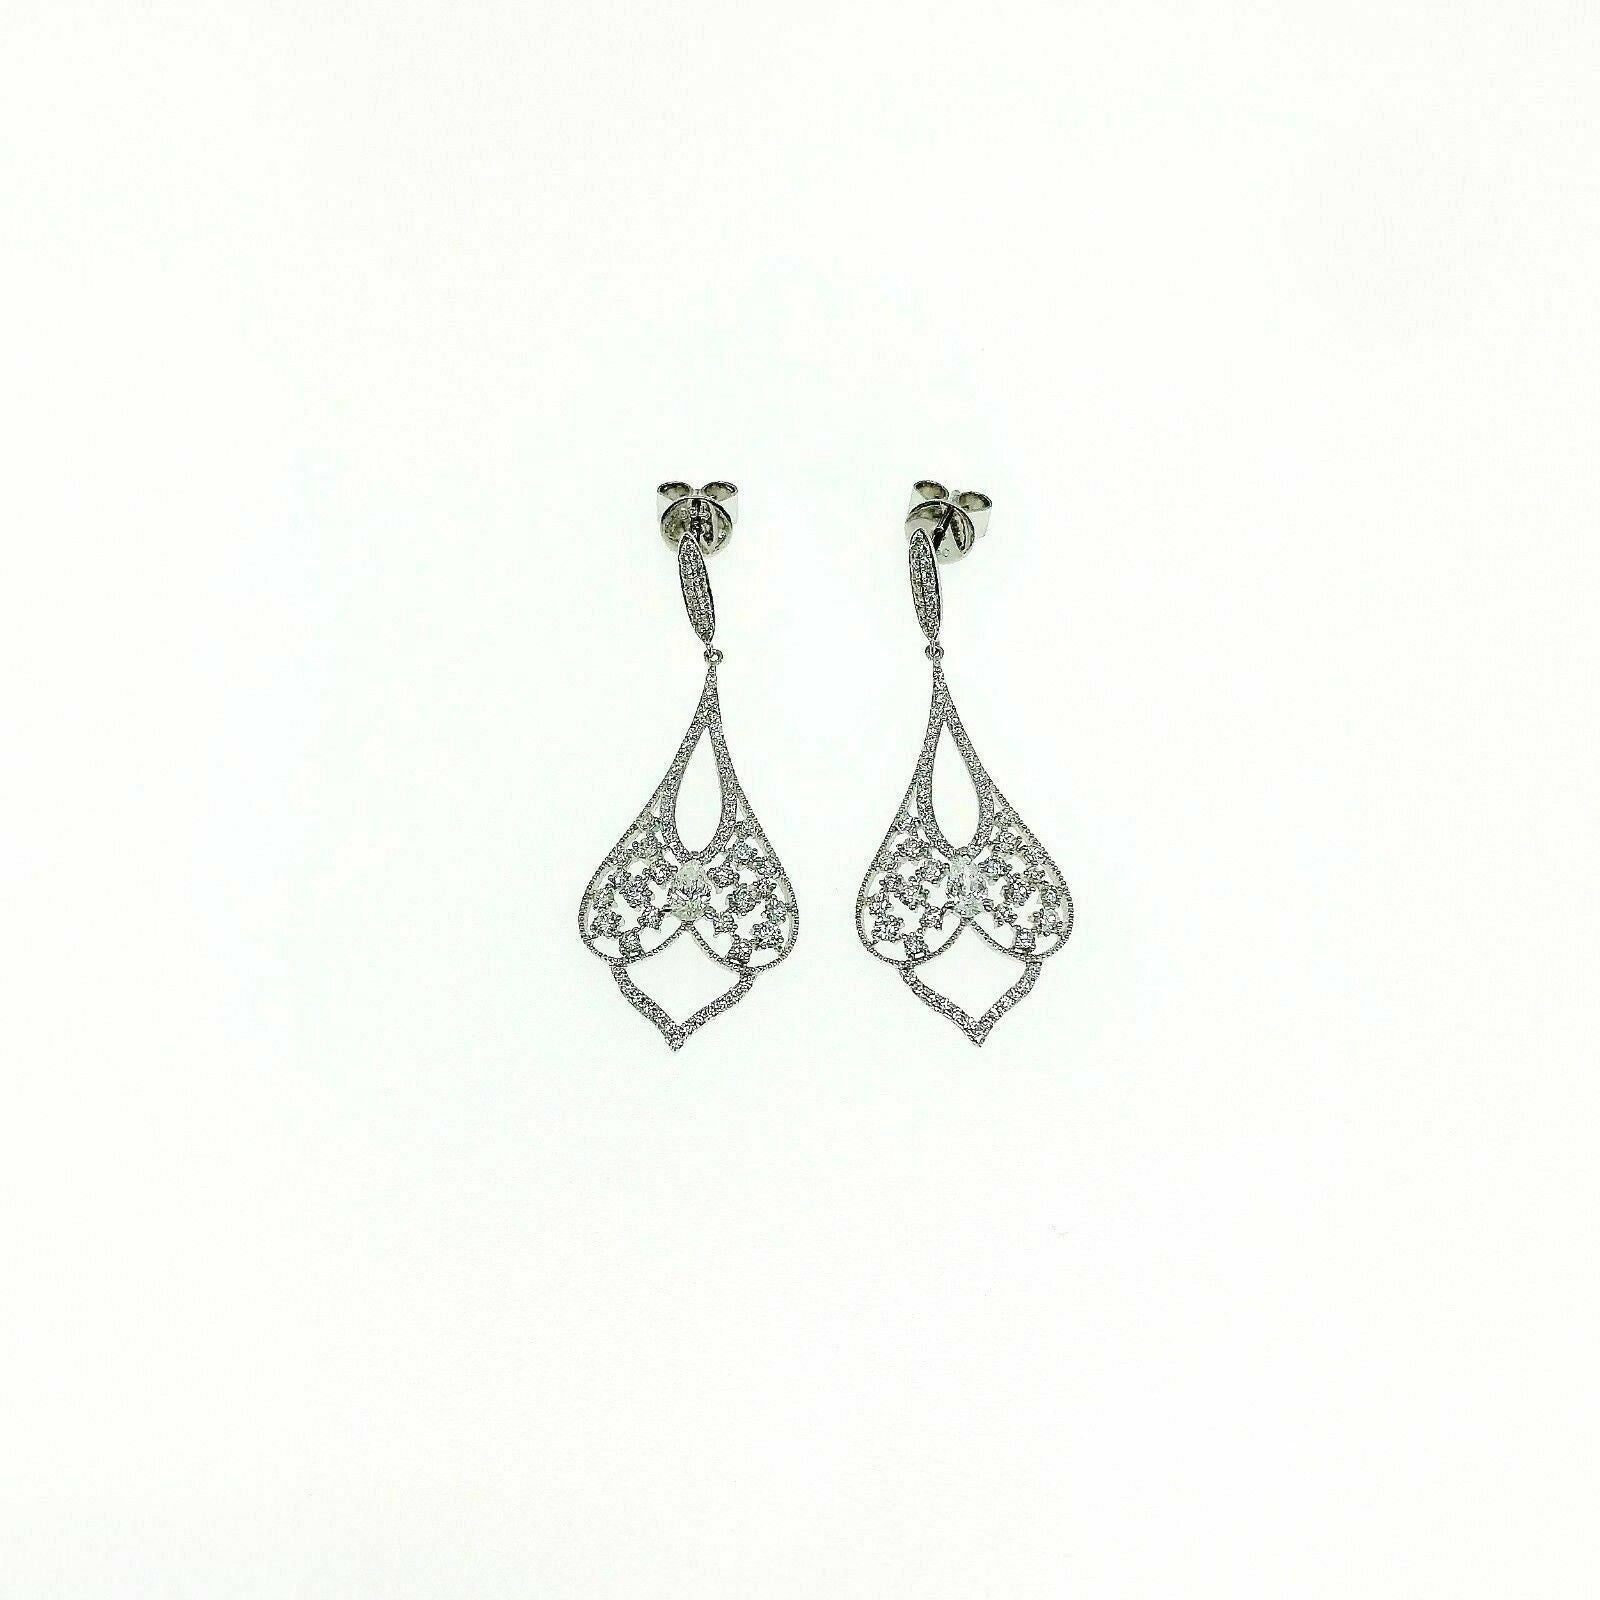 1.53 Carats t.w. Diamond Chandelier Dangle Earrings 18 Karat White Gold